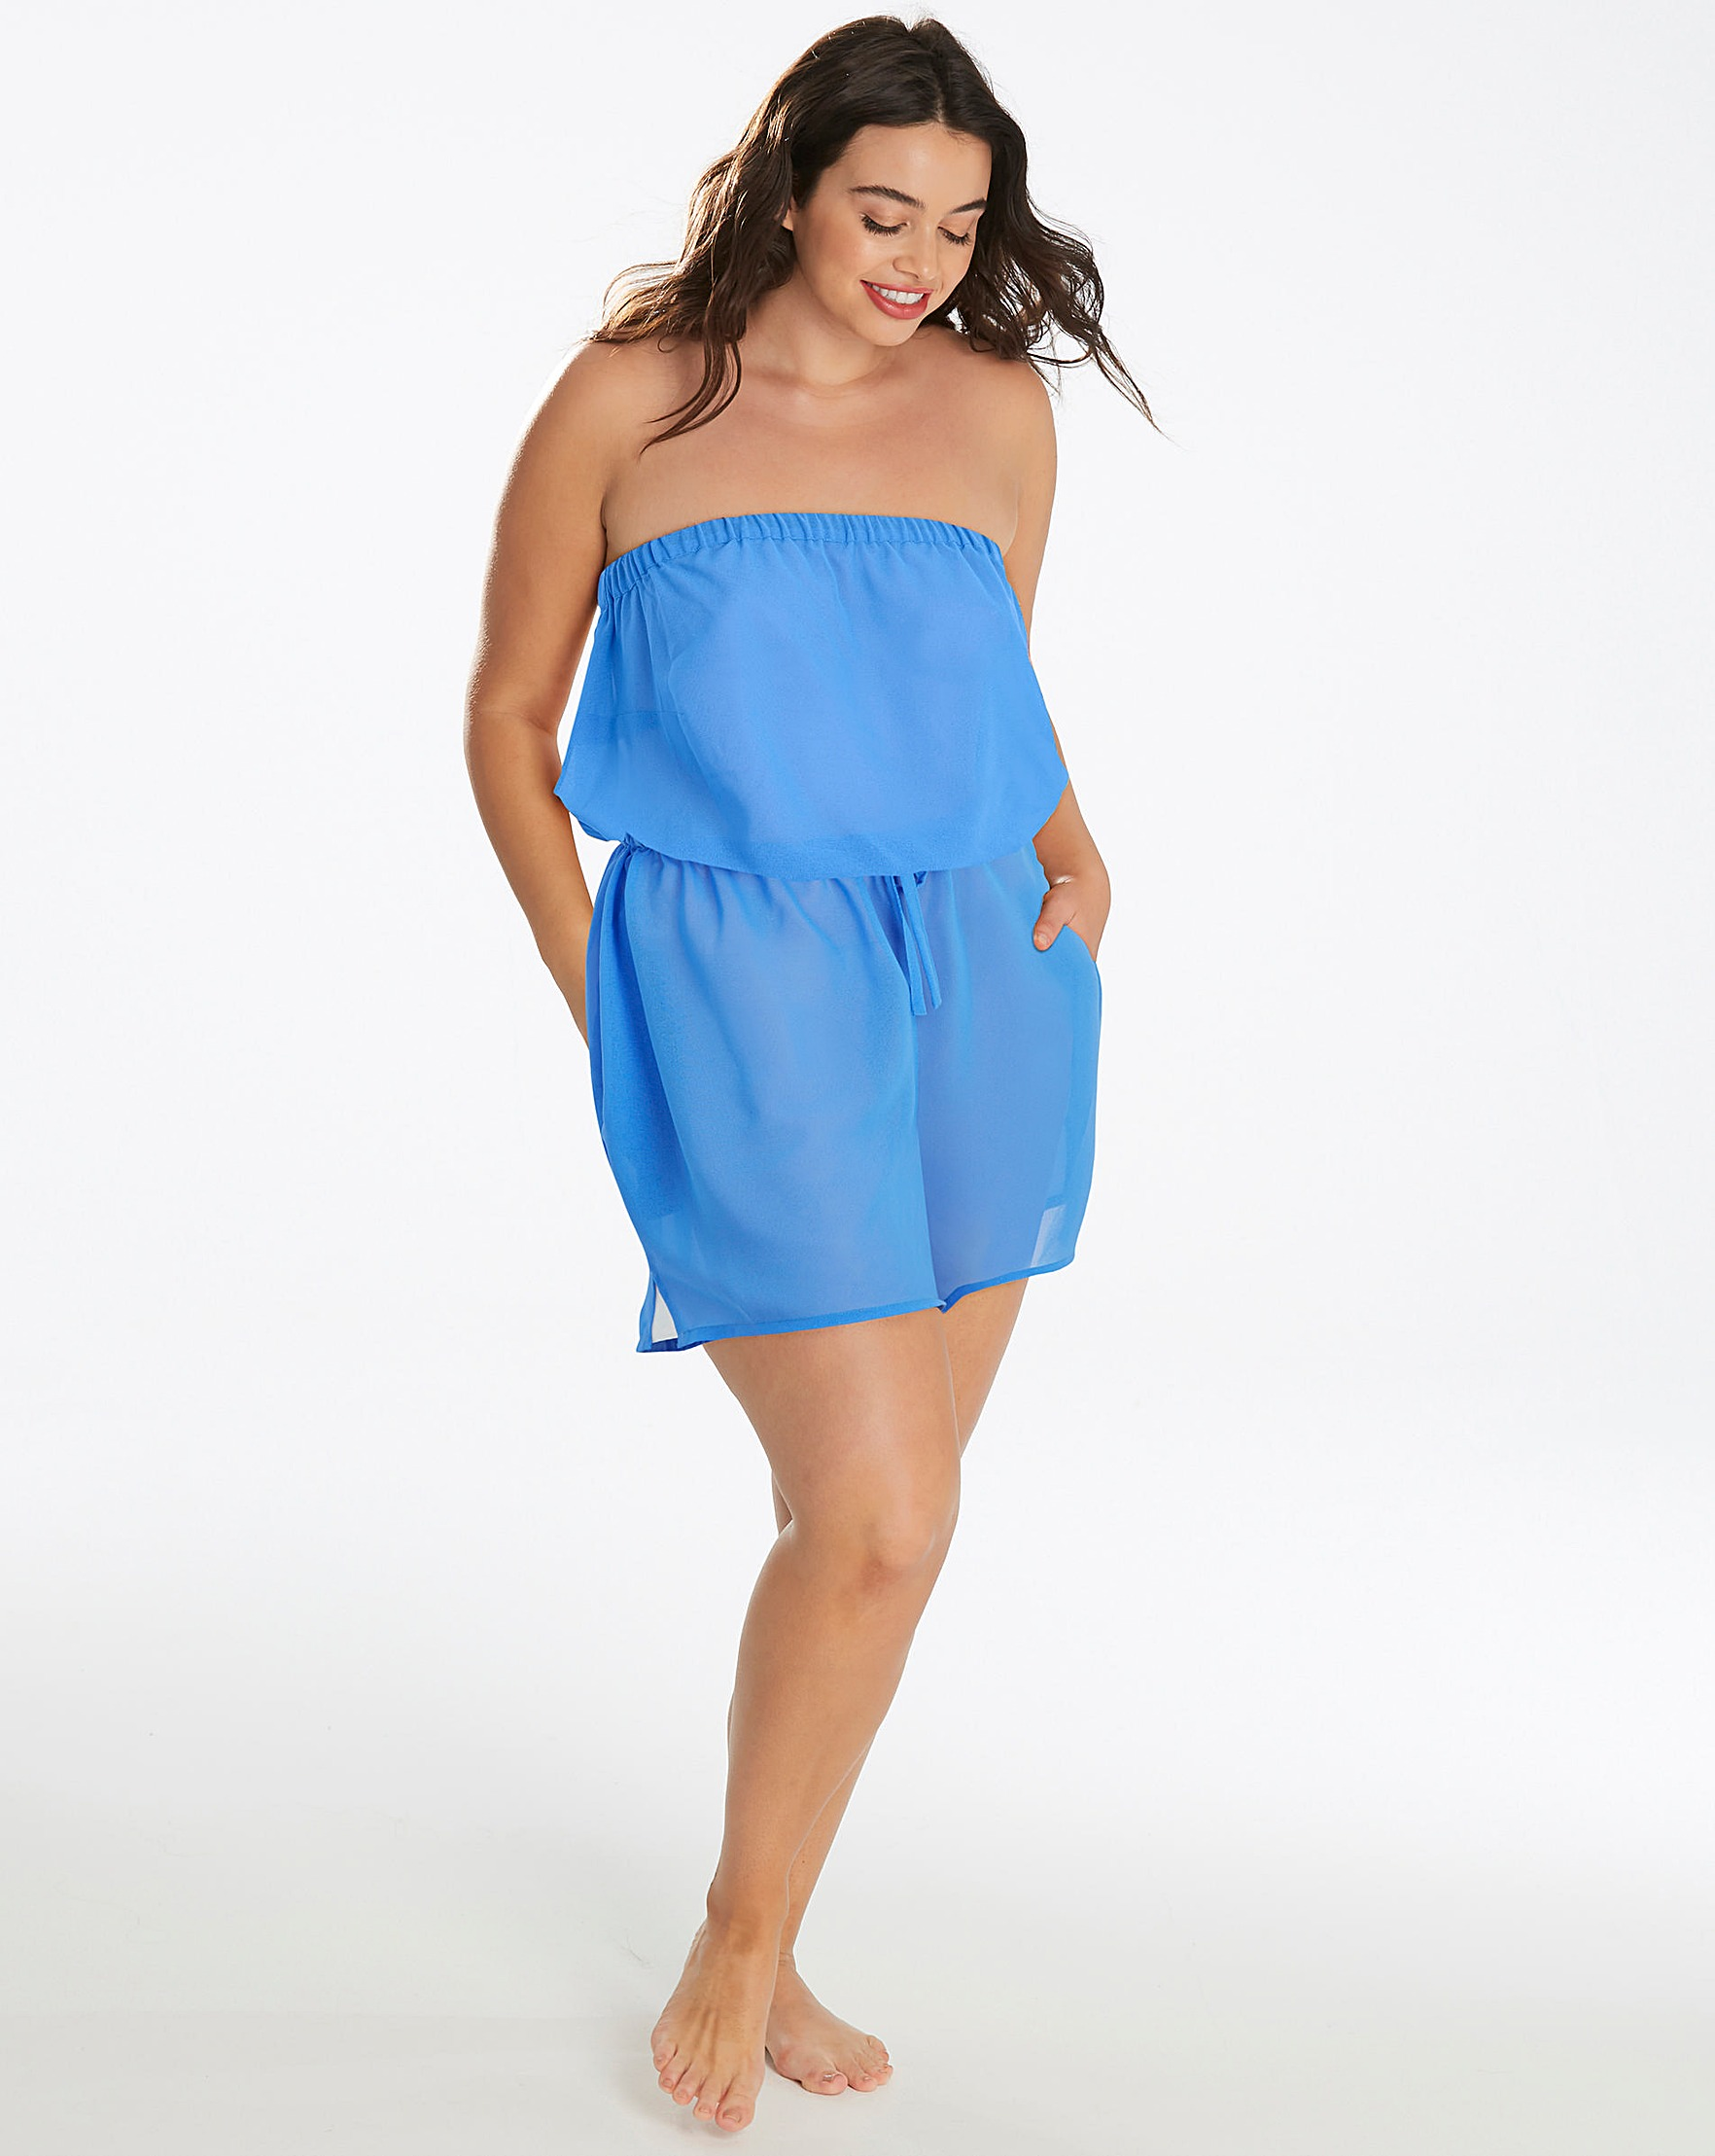 f5d284273dce Simply Yours Blue Beach Playsuit